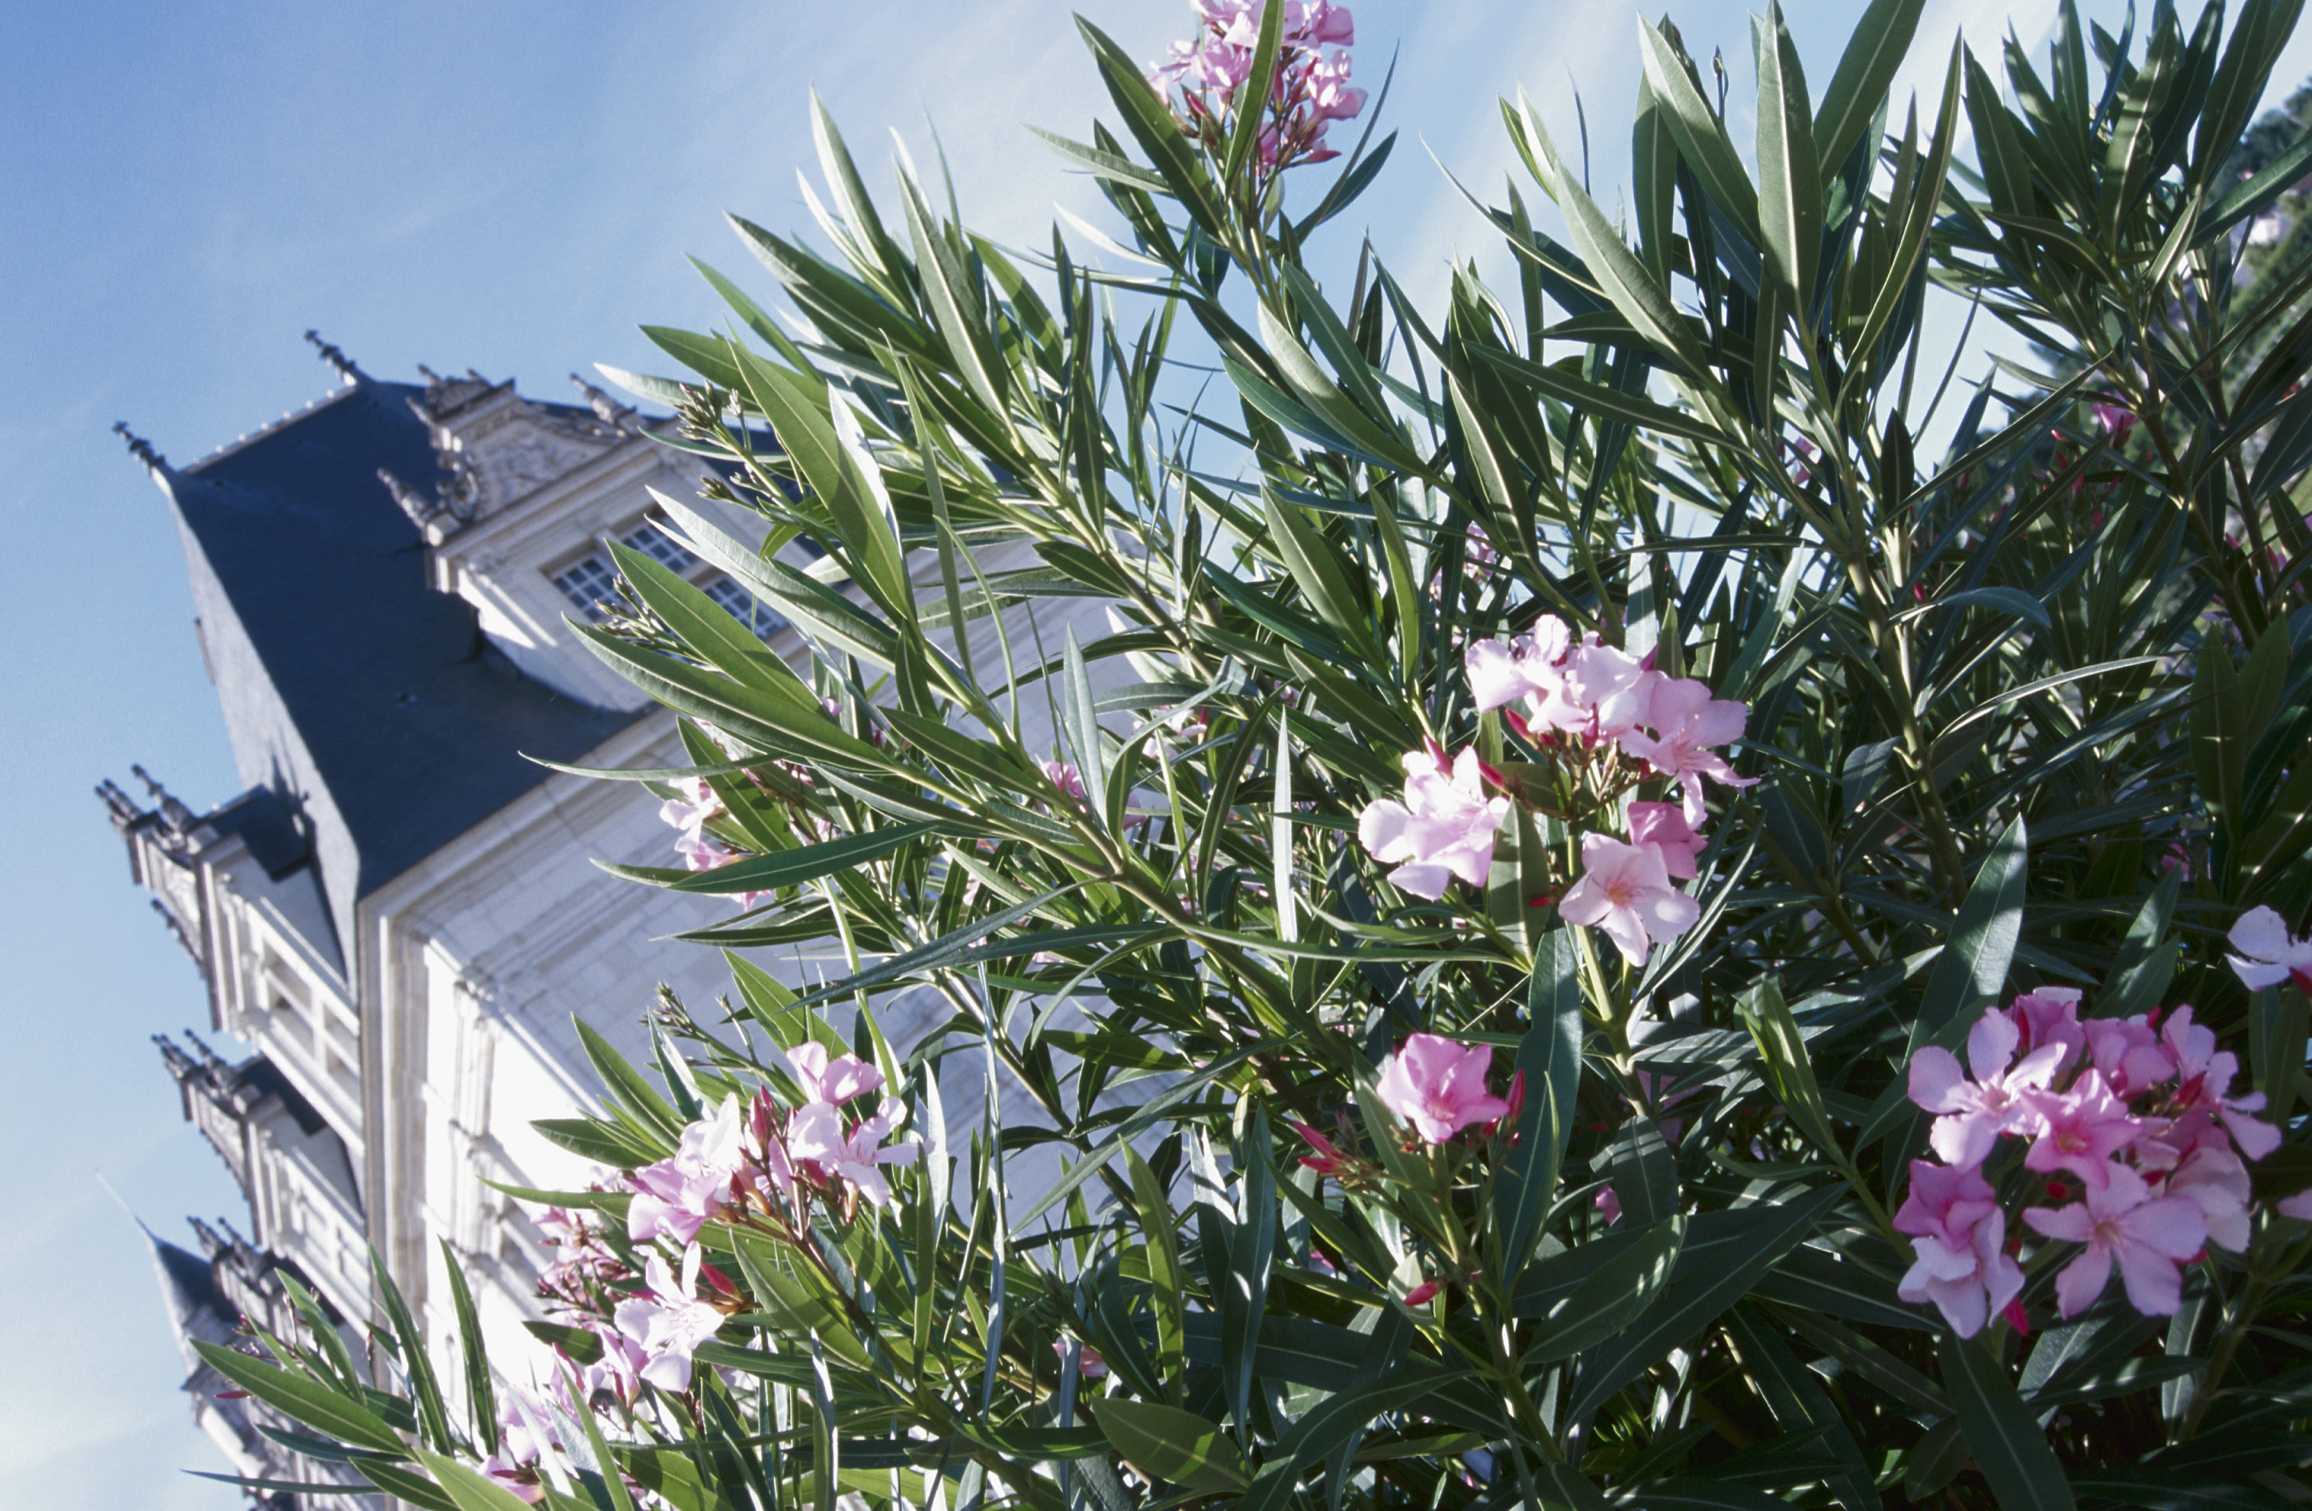 Oleander toxicity